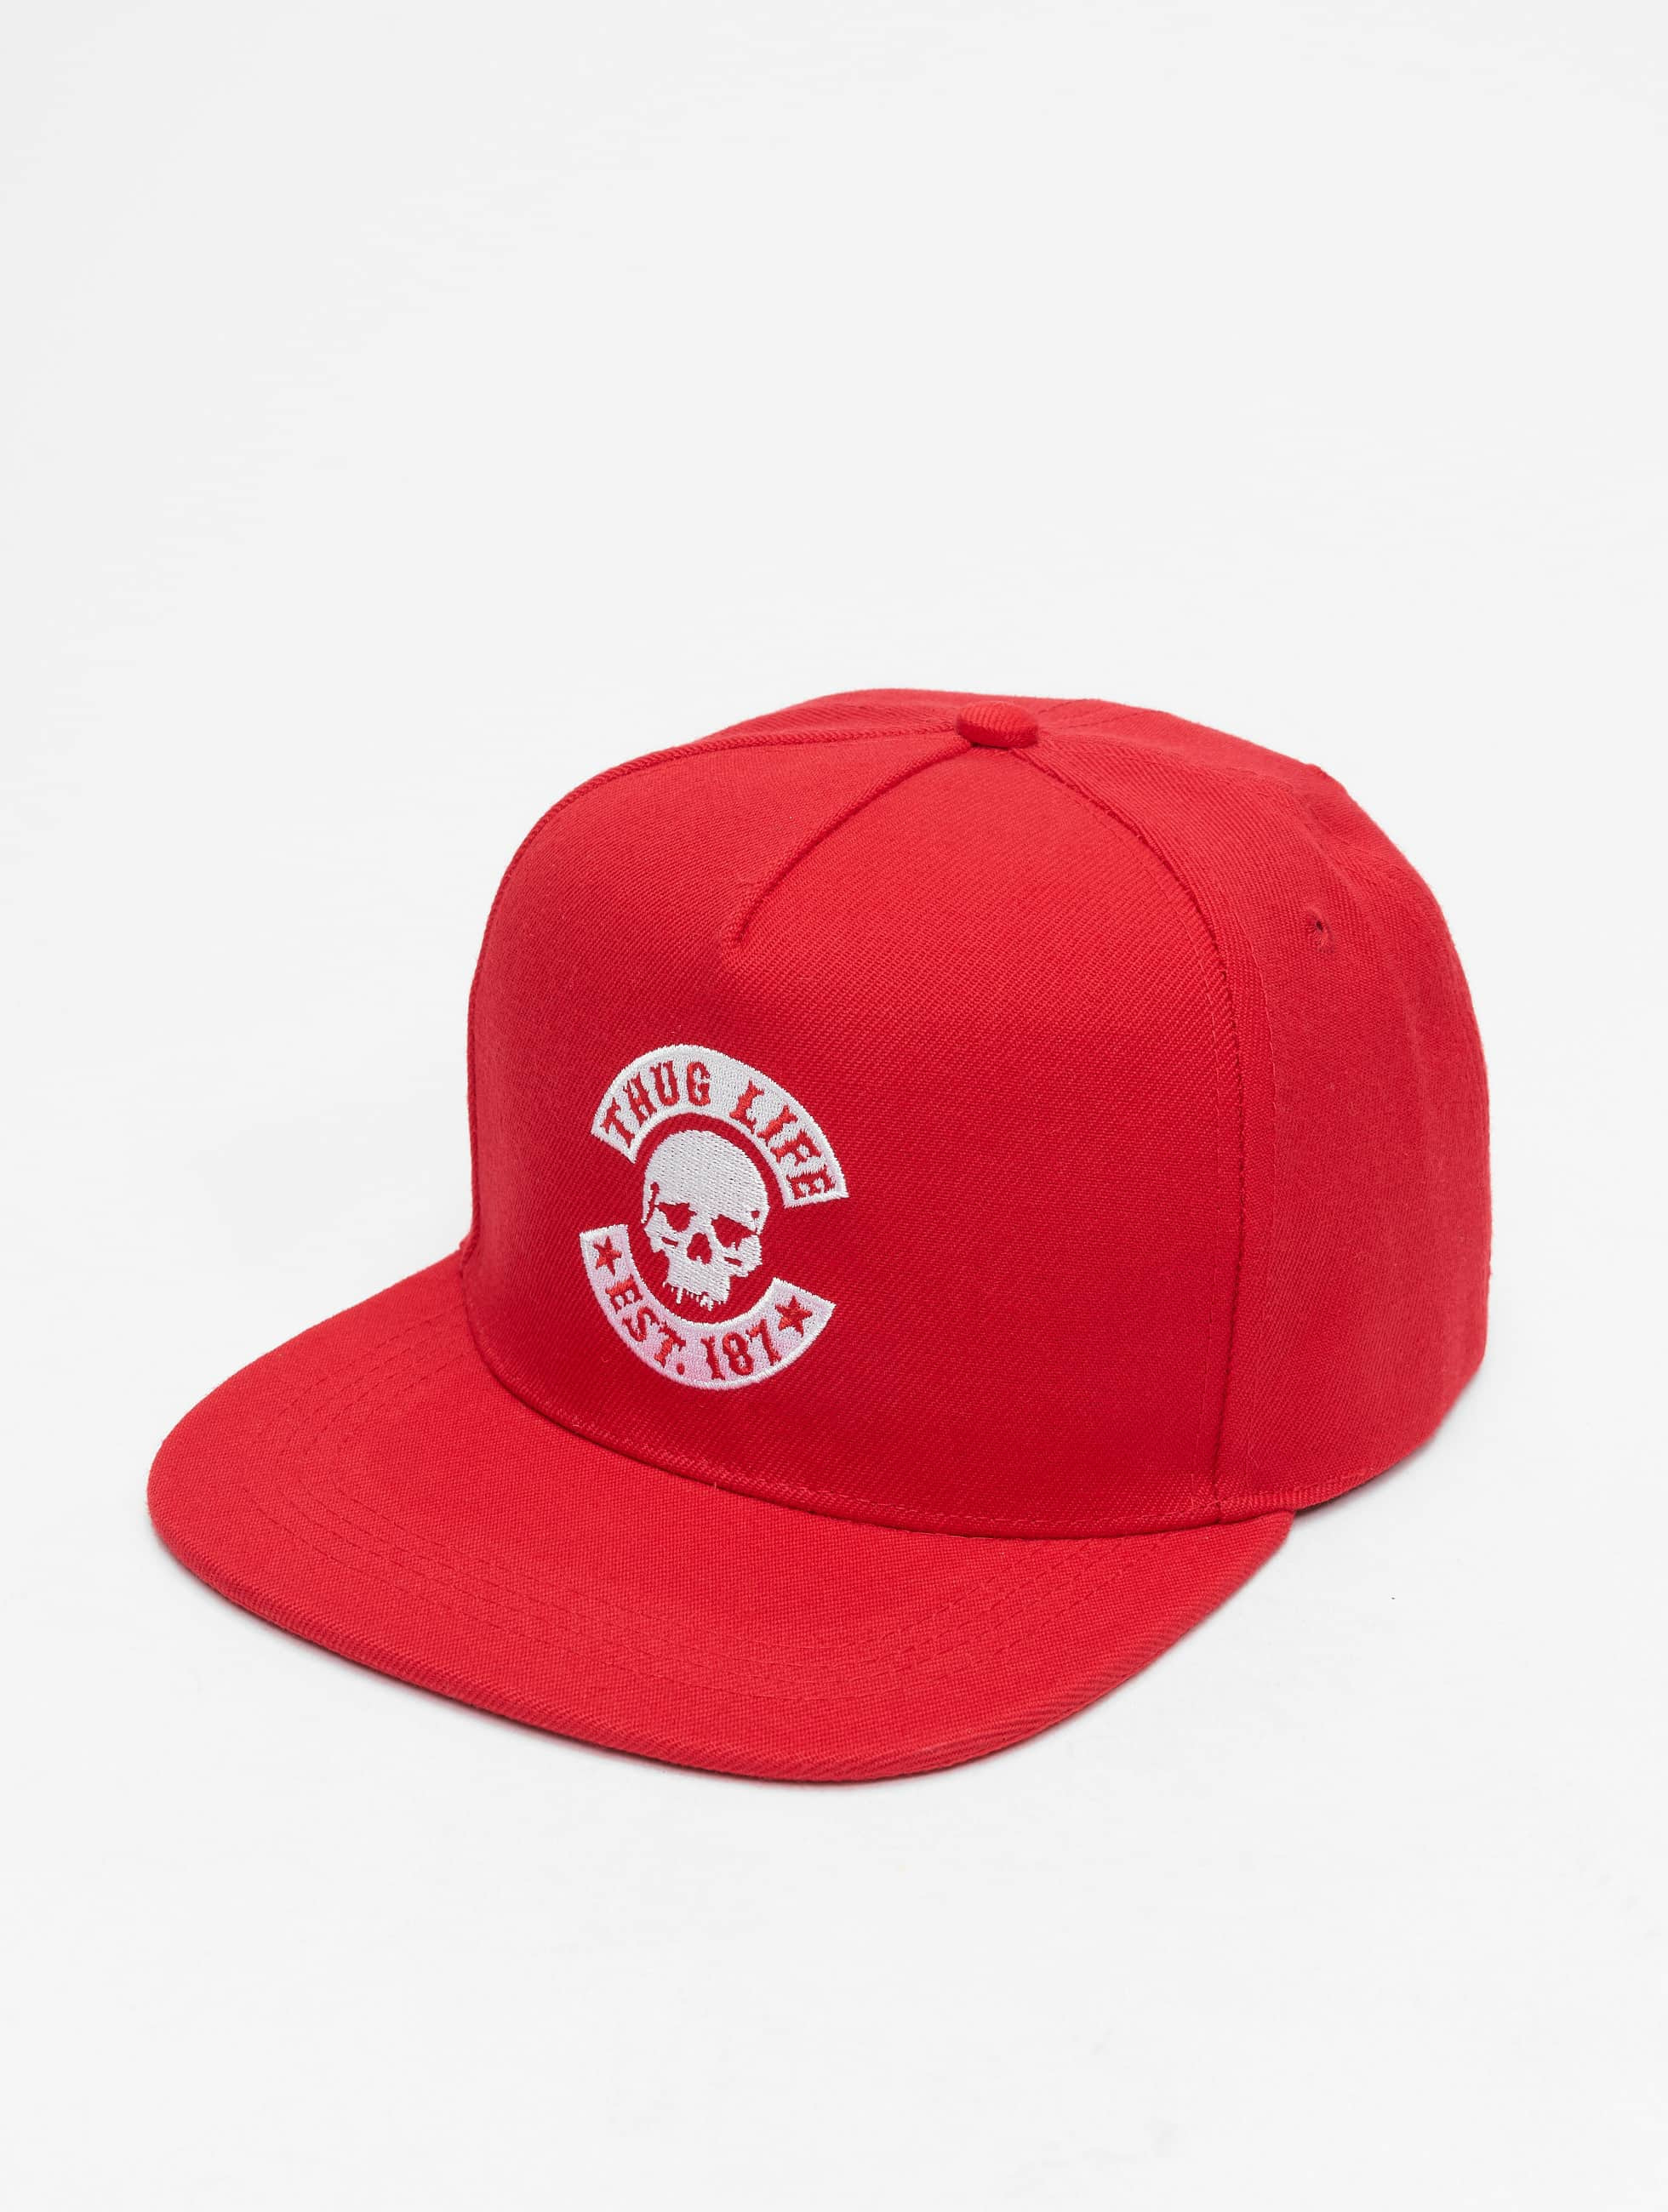 Thug Life / Snapback Cap B.Golden in red Adjustable